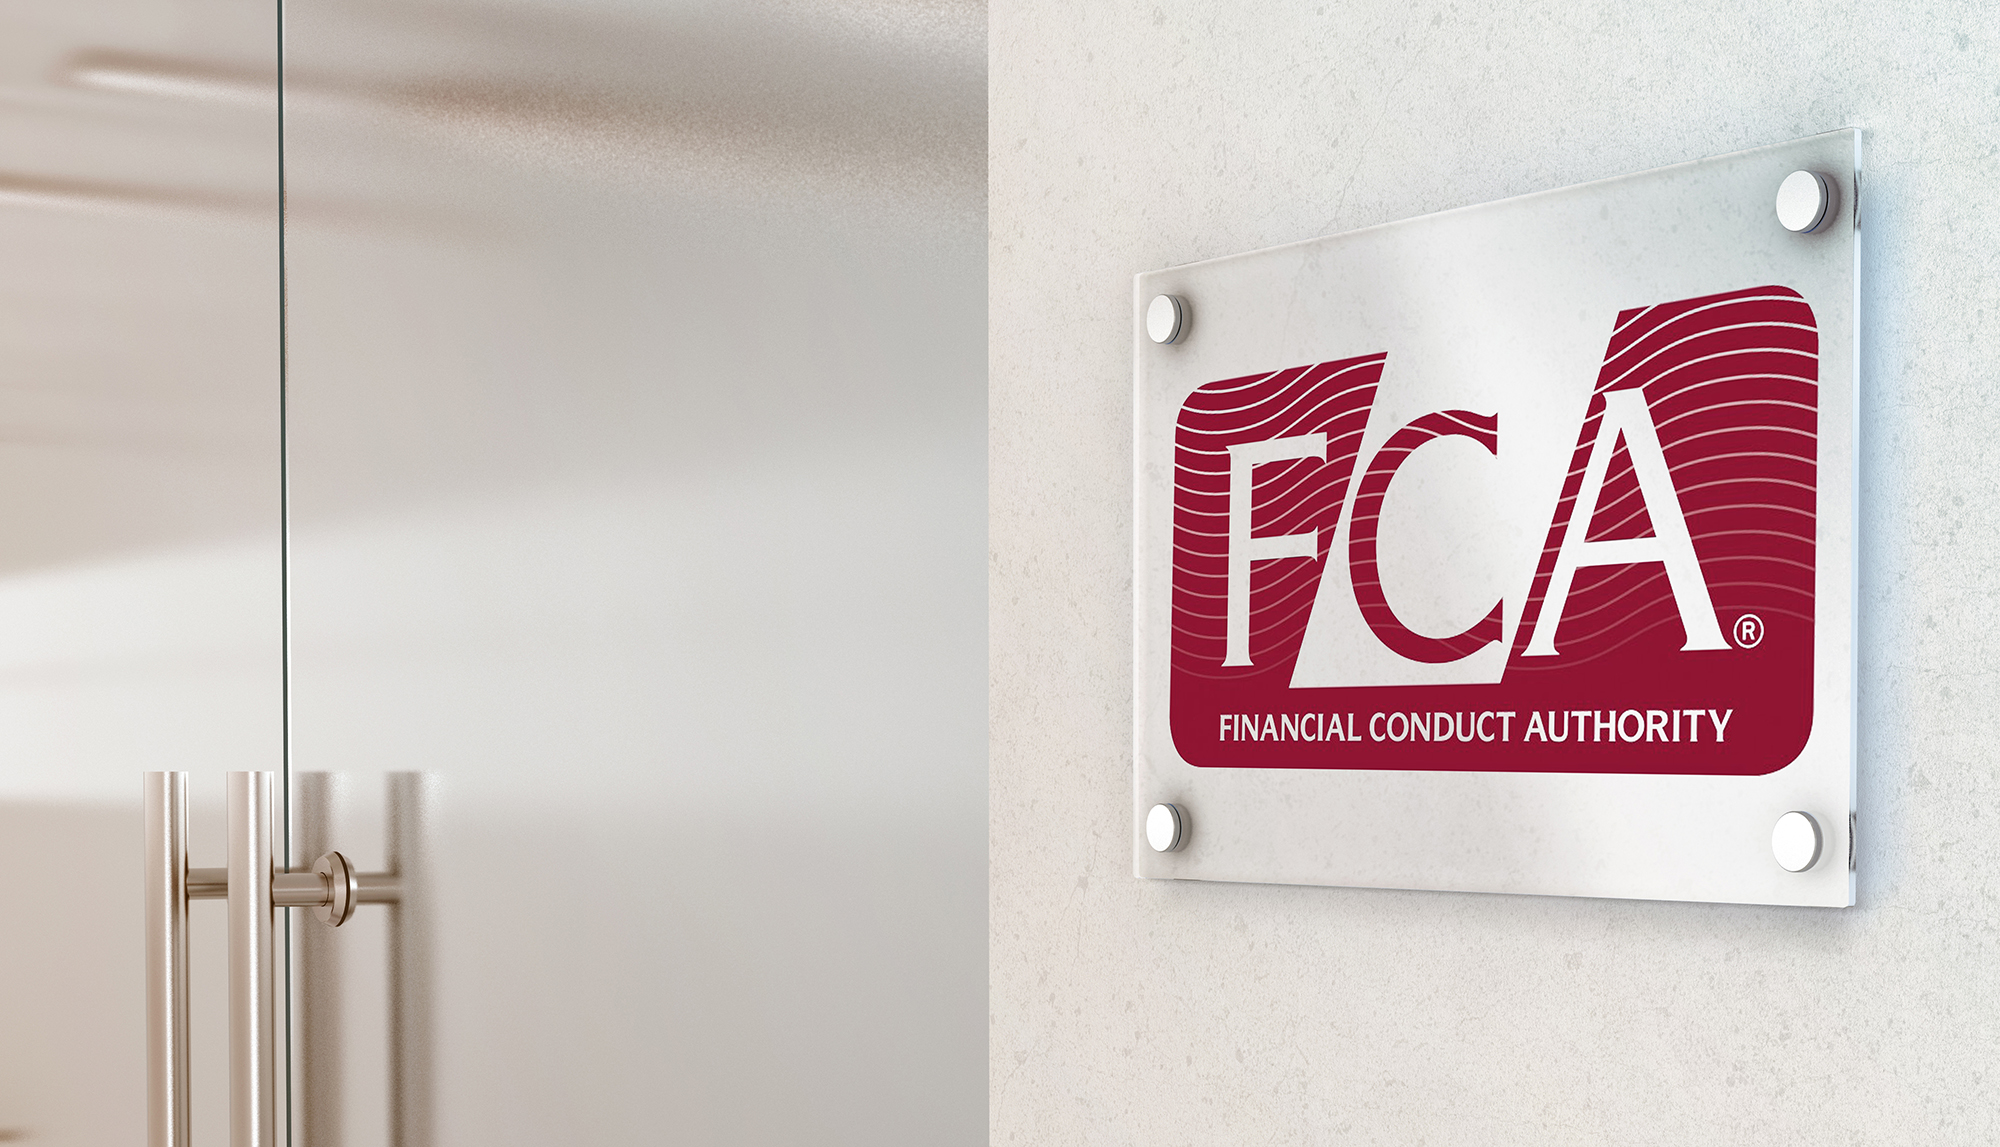 Fca regulated binary options brokers